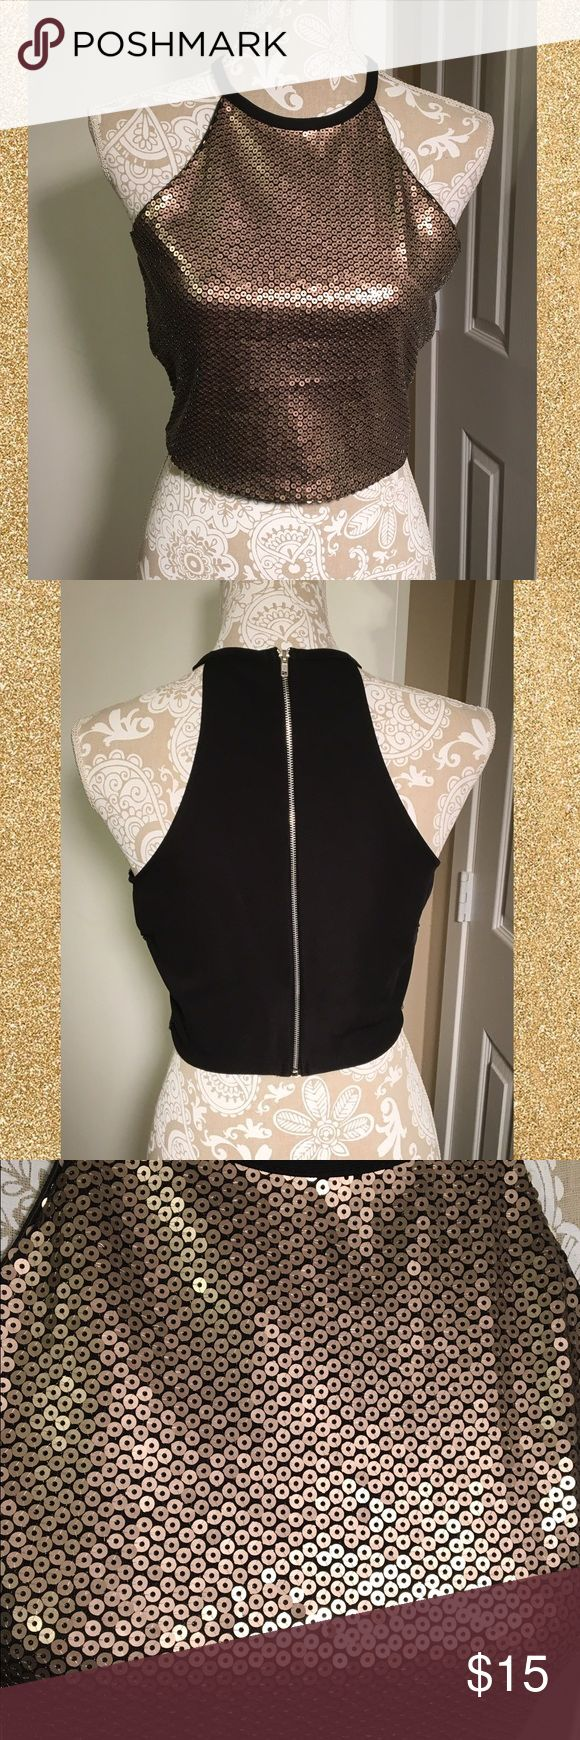 NWT gold sequin halter back zip crop top NWT gold sequined (front) & black full zip back sleeveless racer back crop top. Size Medium. Has some stretch 95% poly 5% spandex. Super cute for summer night parties or music festivals. Dress up or down. Fully lined so shouldn't be itchy. Brand new. Smoke free home. #nwt #new #crop #gold #black #sequin #medium #summer #zip #stretch ❌no trades❌ one clothing Tops Crop Tops